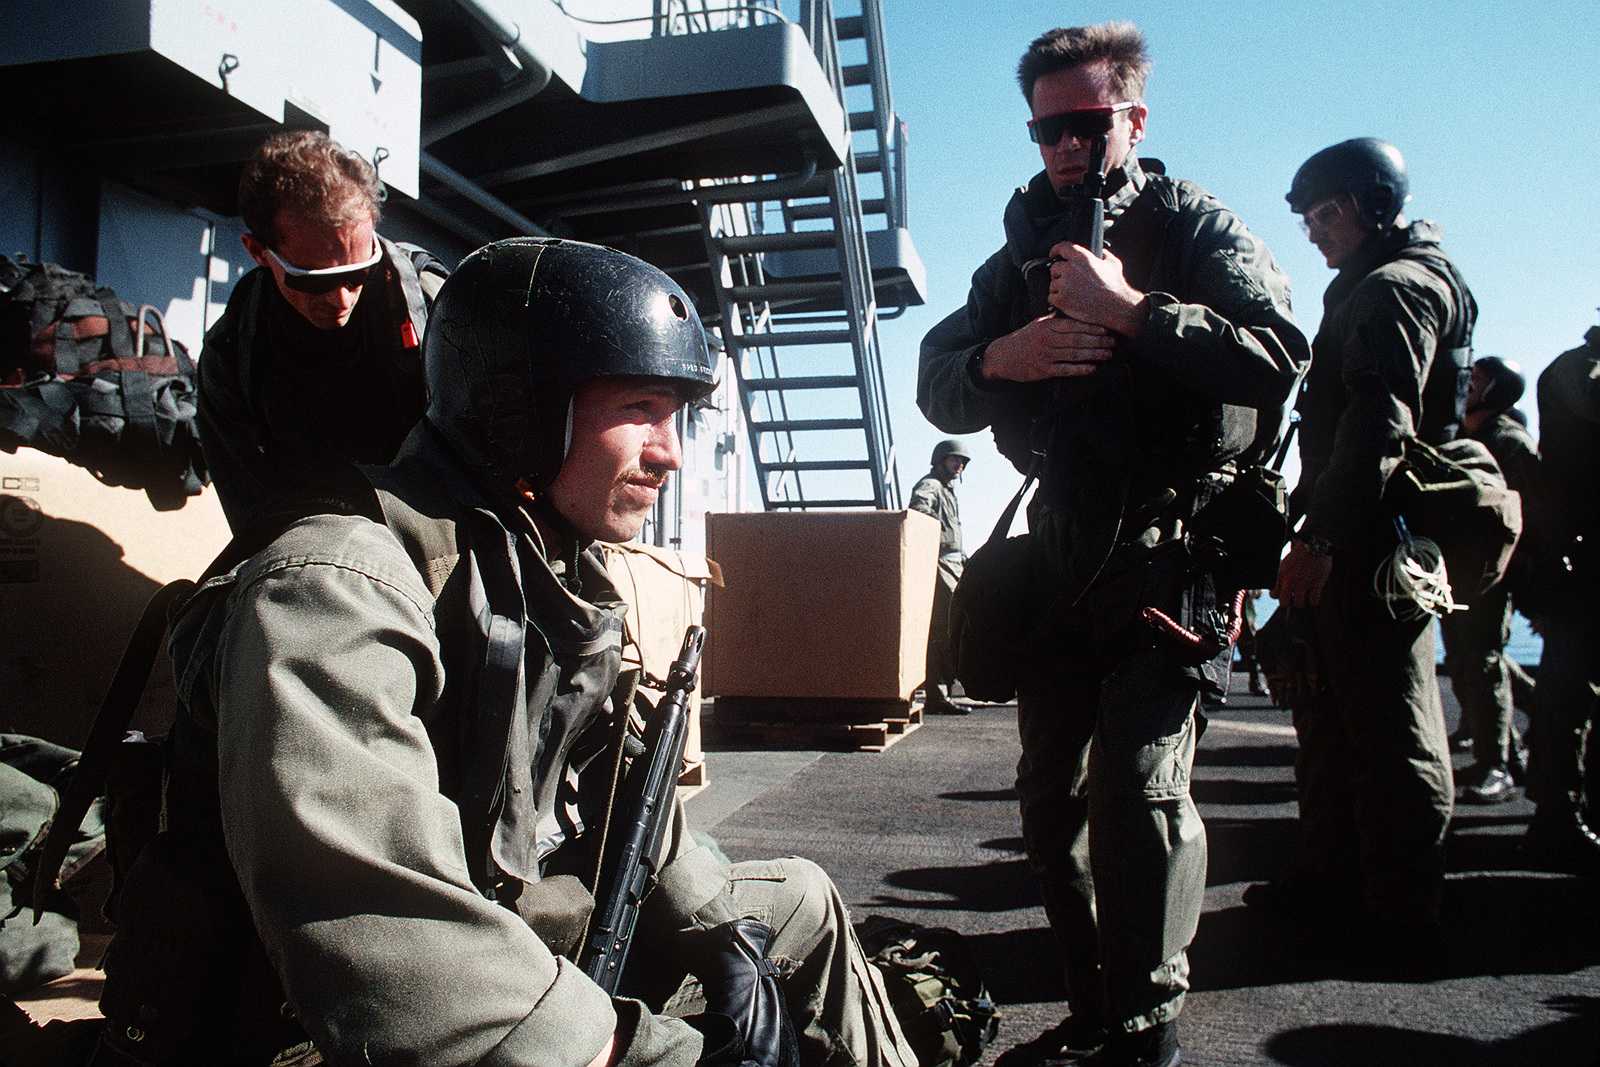 Members of Sea-Air-Land (SEAL) Team 8 stand by prior to a